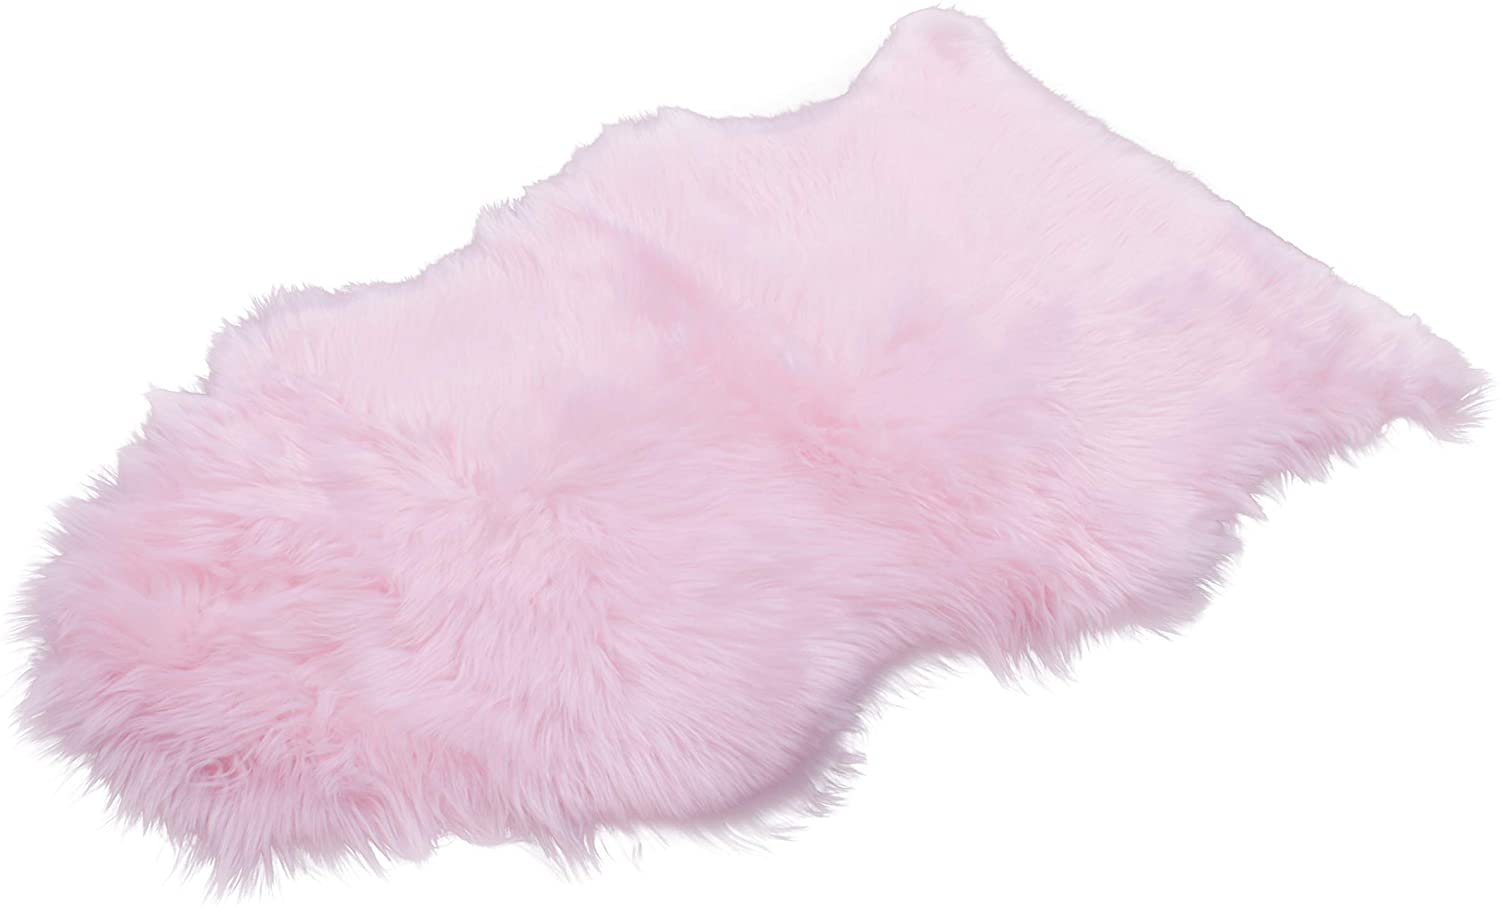 Silky Super Soft Faux Sheepskin Shag Rugs All Machine Washable. Great for Photography or a Bedroom Get The Real Look Without Any Guilt of Harming Animals (Single Pelt (2'x3'), Pink)